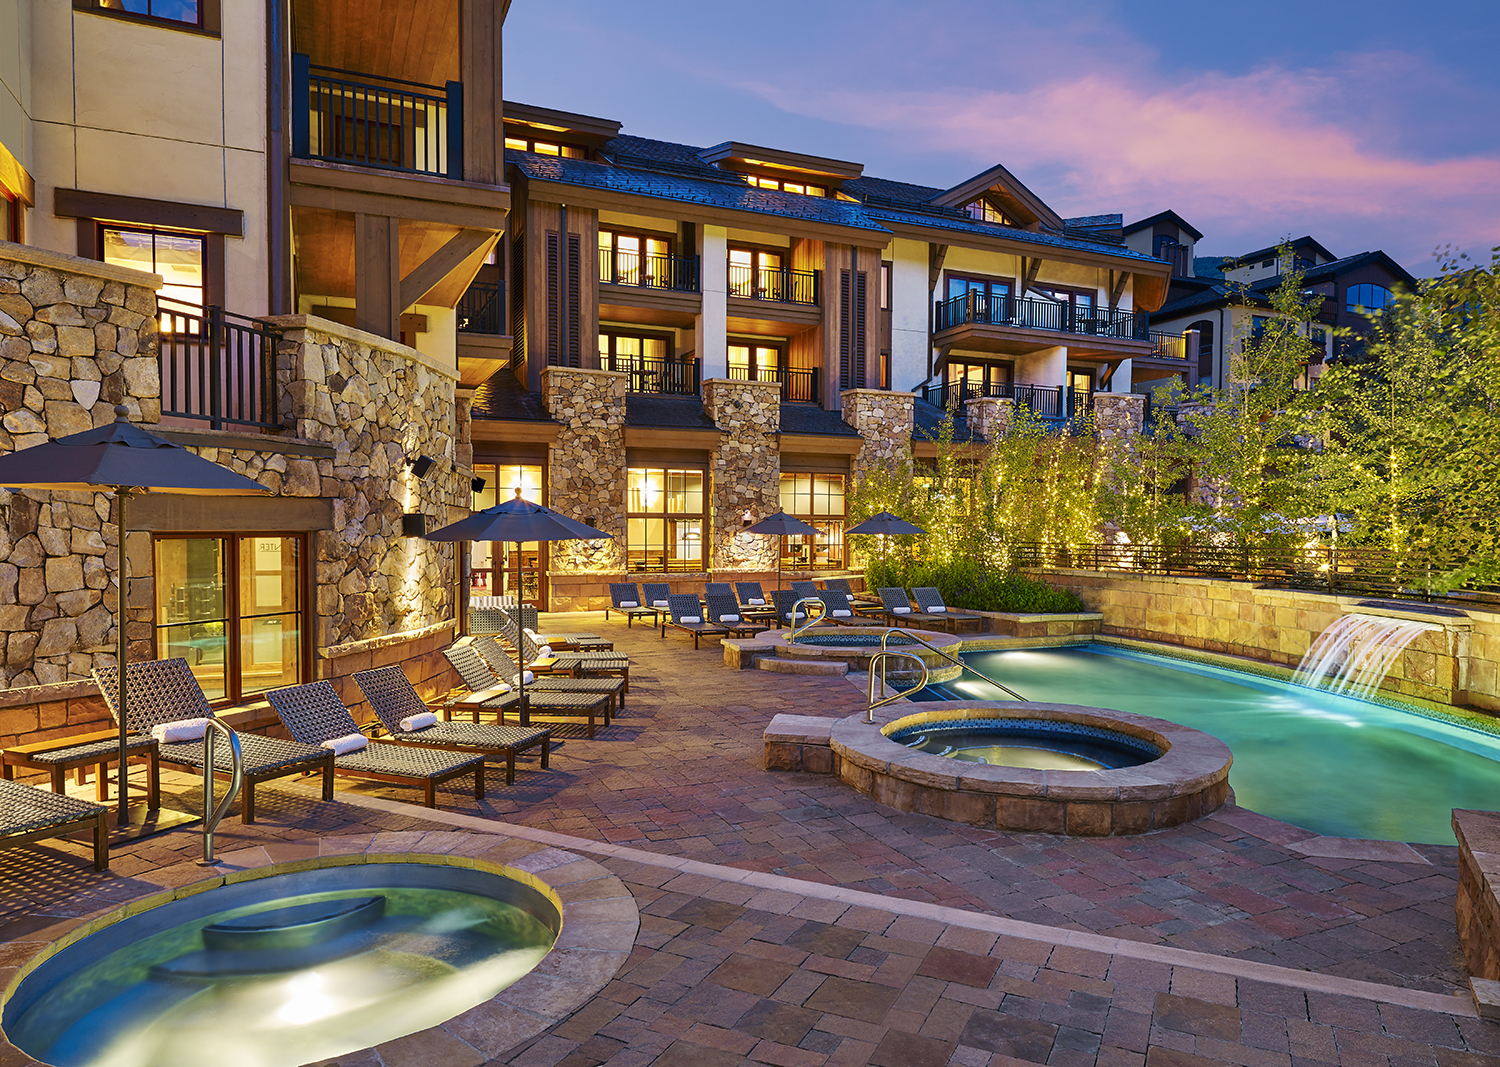 The swimming pool offers stunning mountain views.